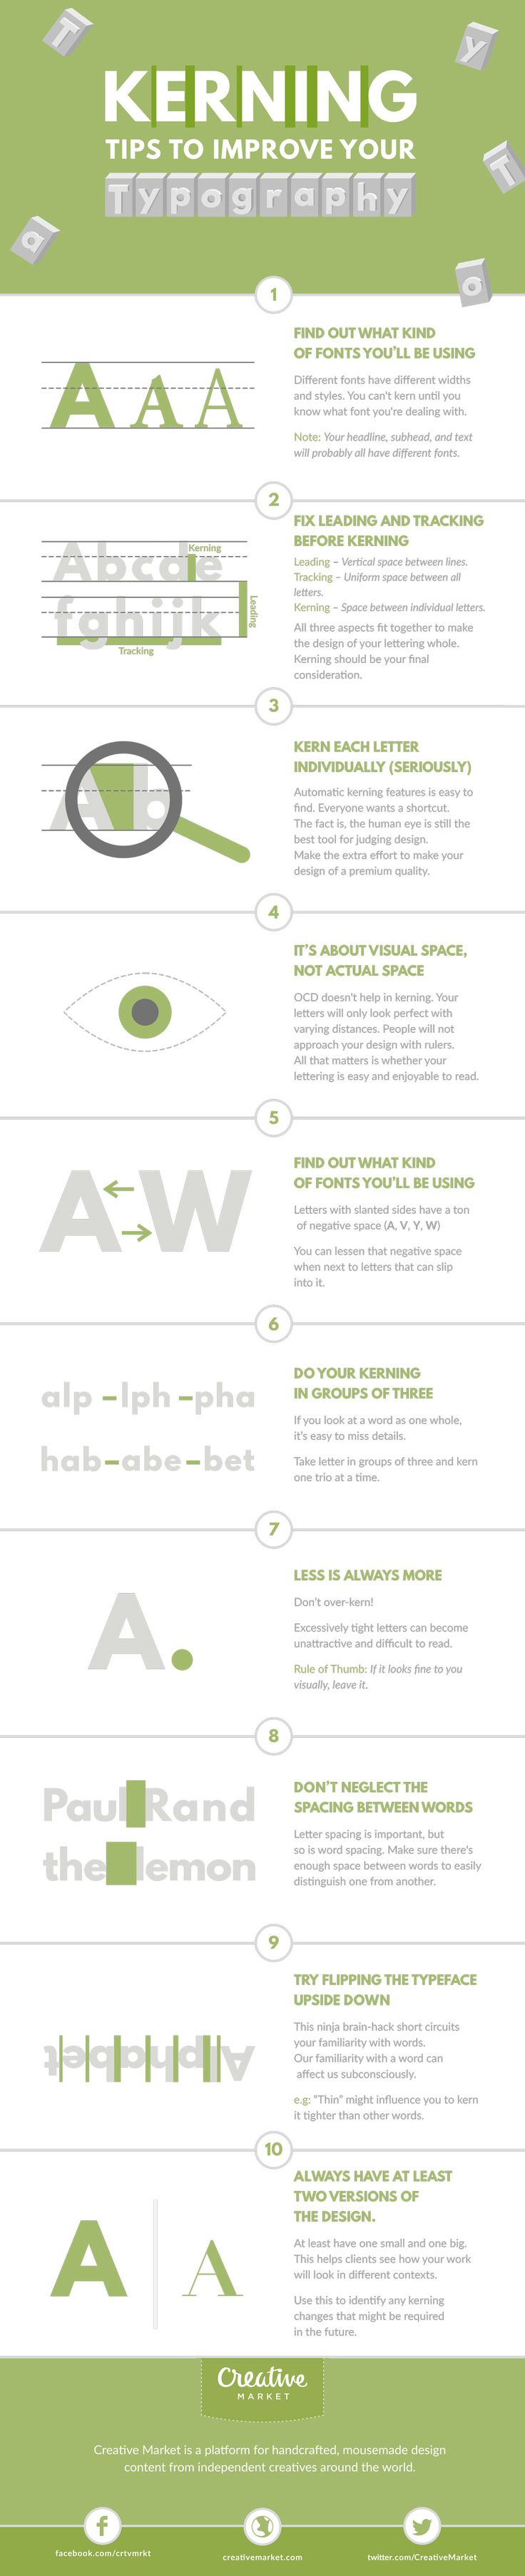 Improve your typography skills with these tips for kerning!